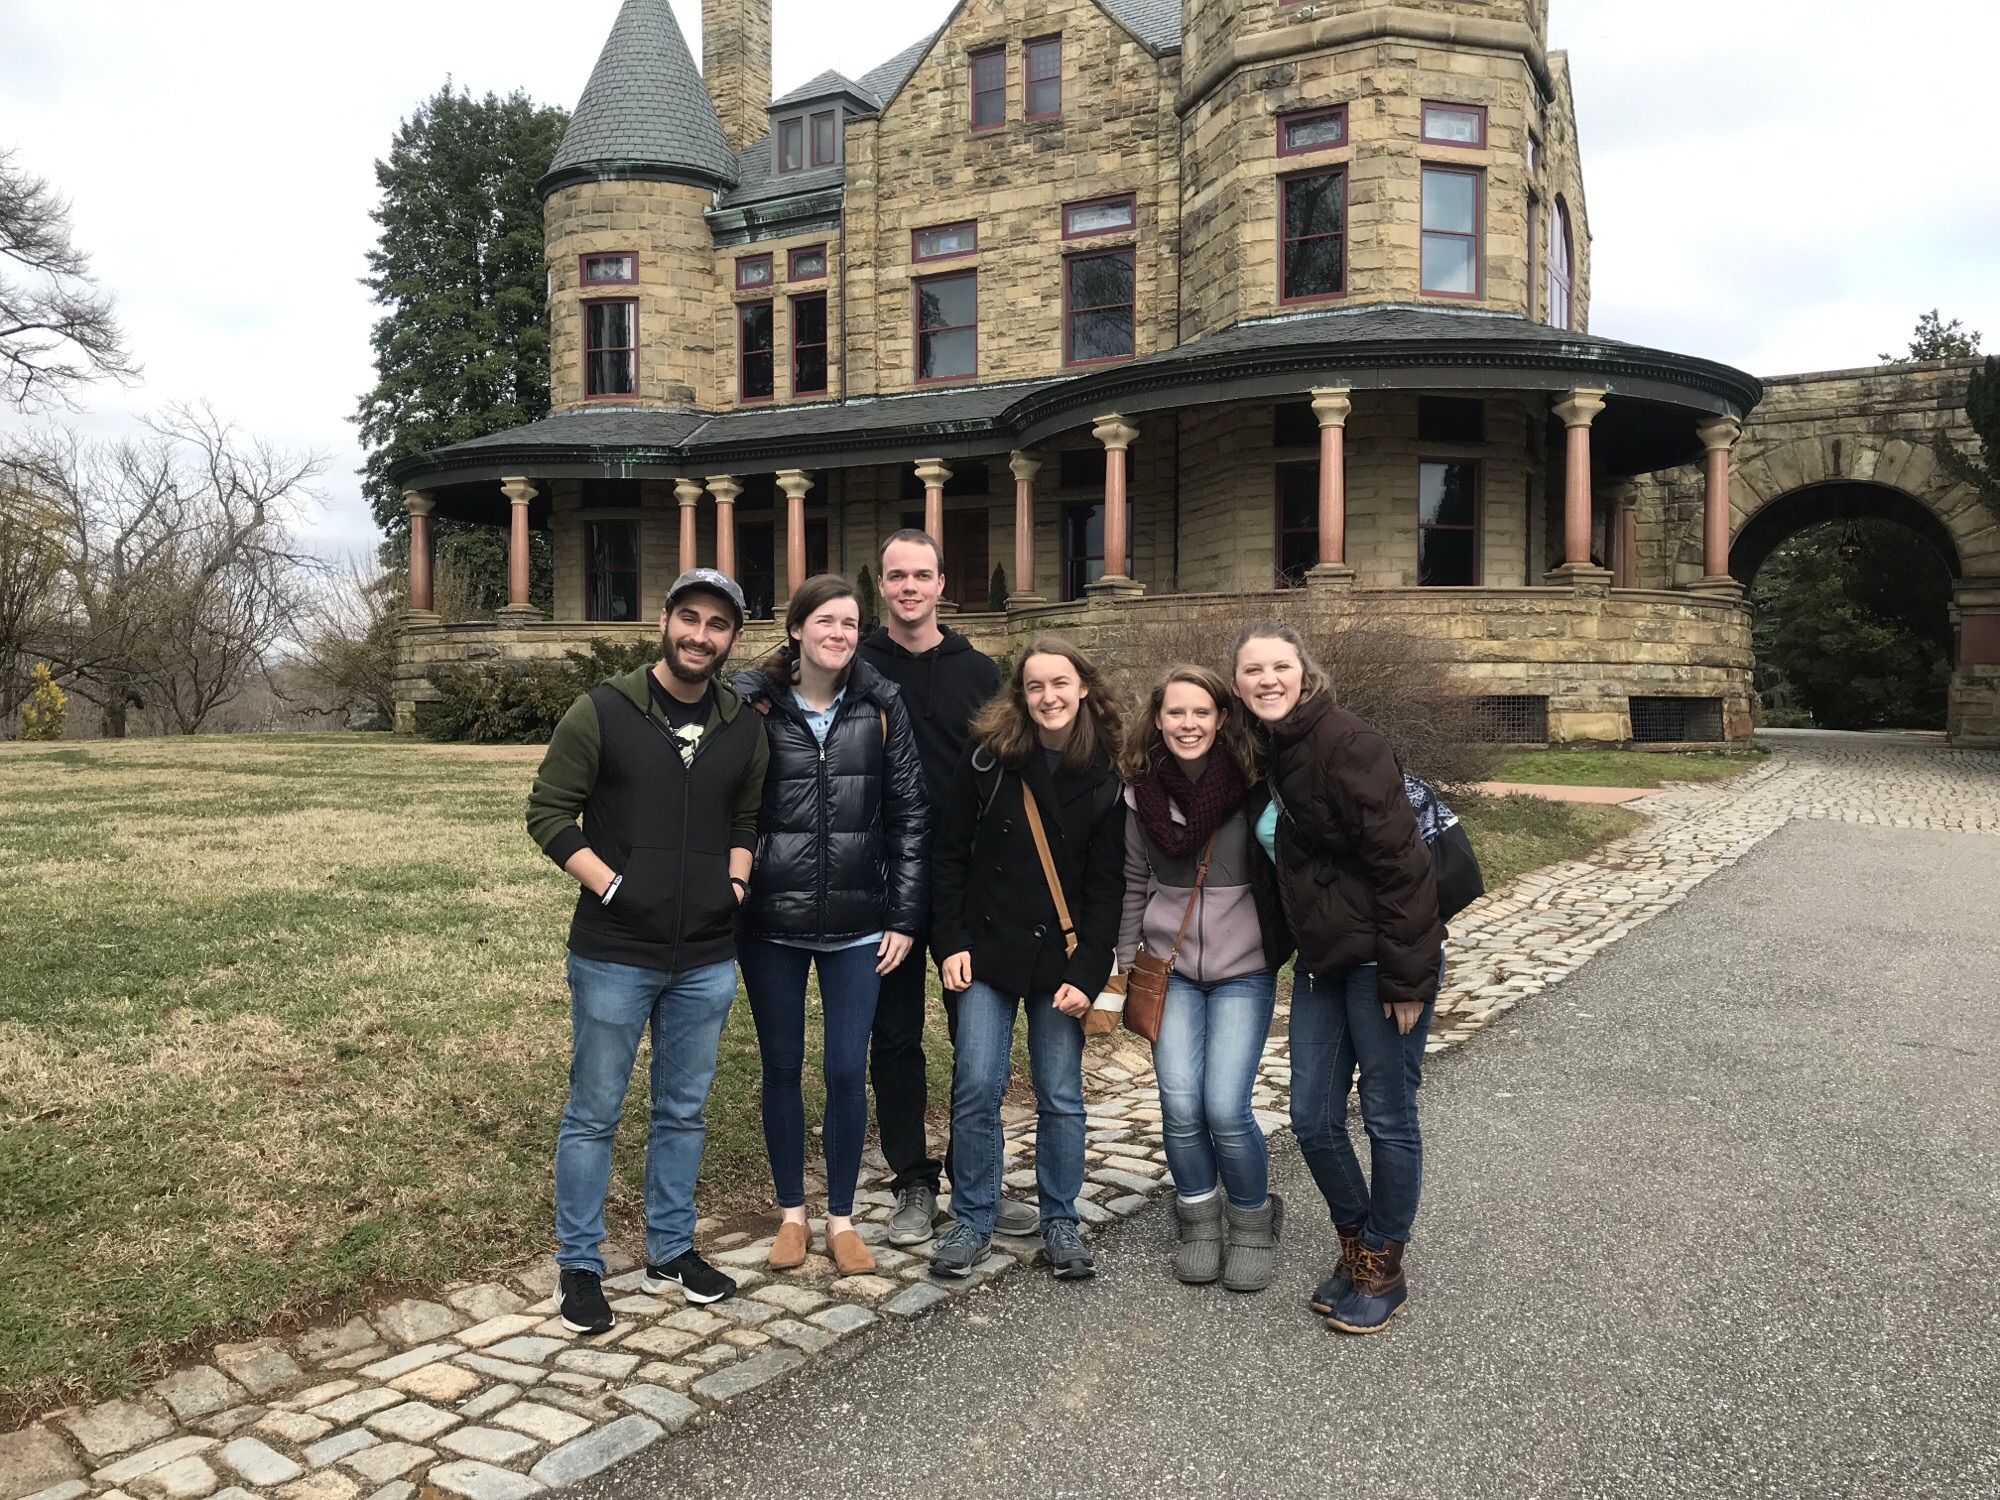 This is a picture from the Honors Retreat to Richmond, Virginia. I went with part of the group that toured the Maymont Mansion.